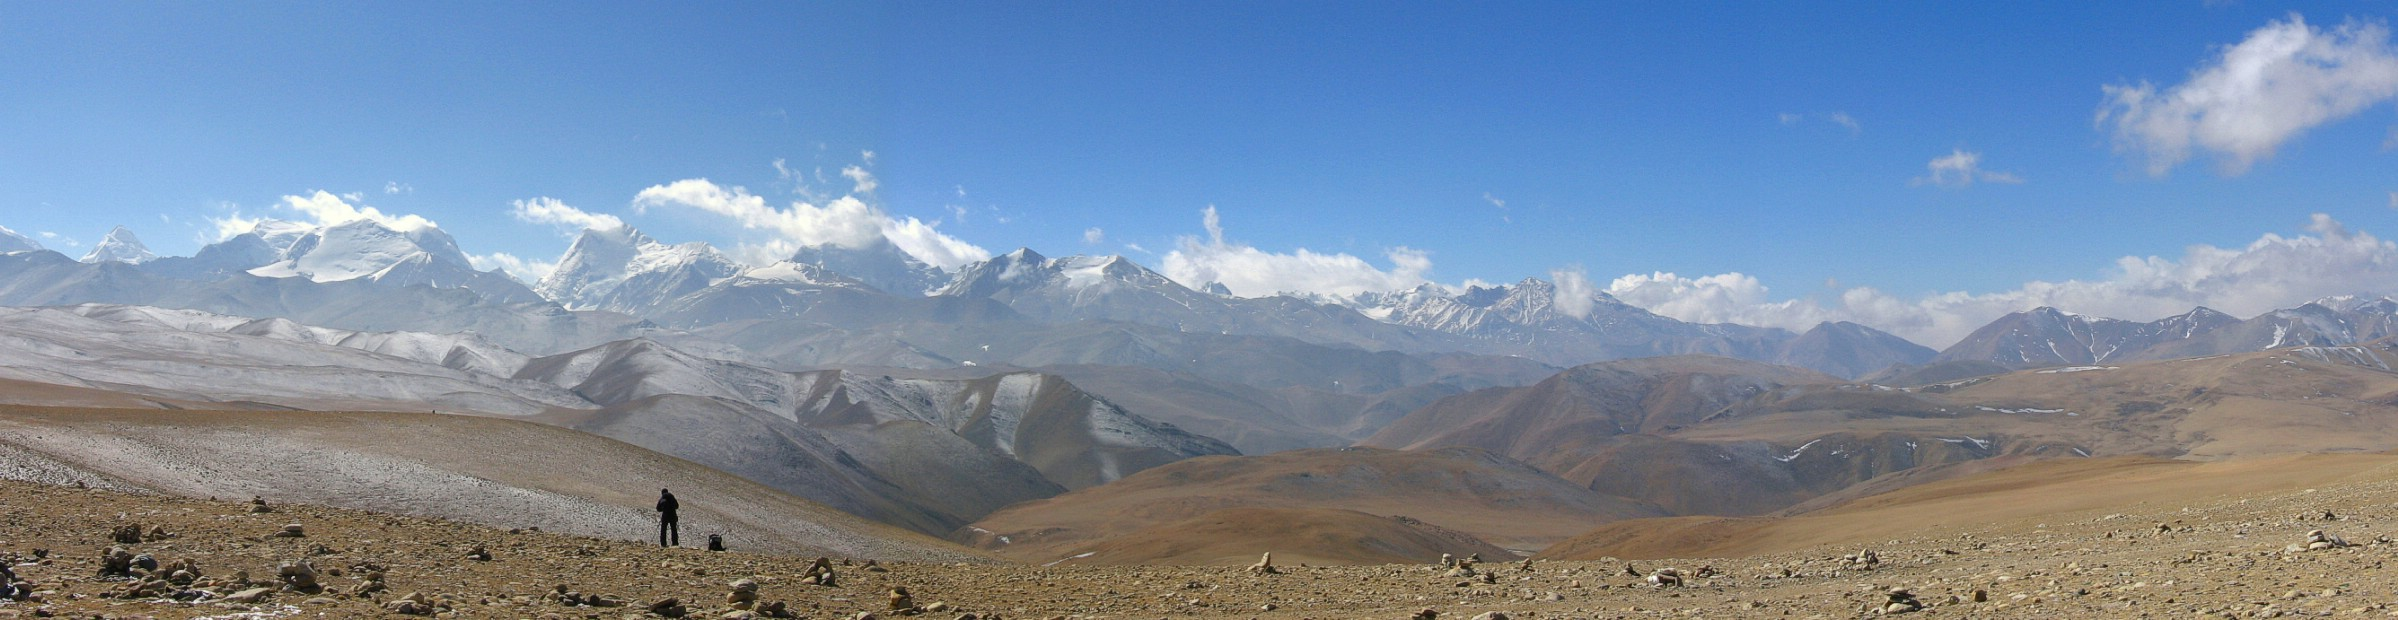 Himalayan vista on the 5,050-metre (16,650 ft) Lalung La Pass on the Friendship Highway, Tibet, en route to Nepal. March 3rd 2008